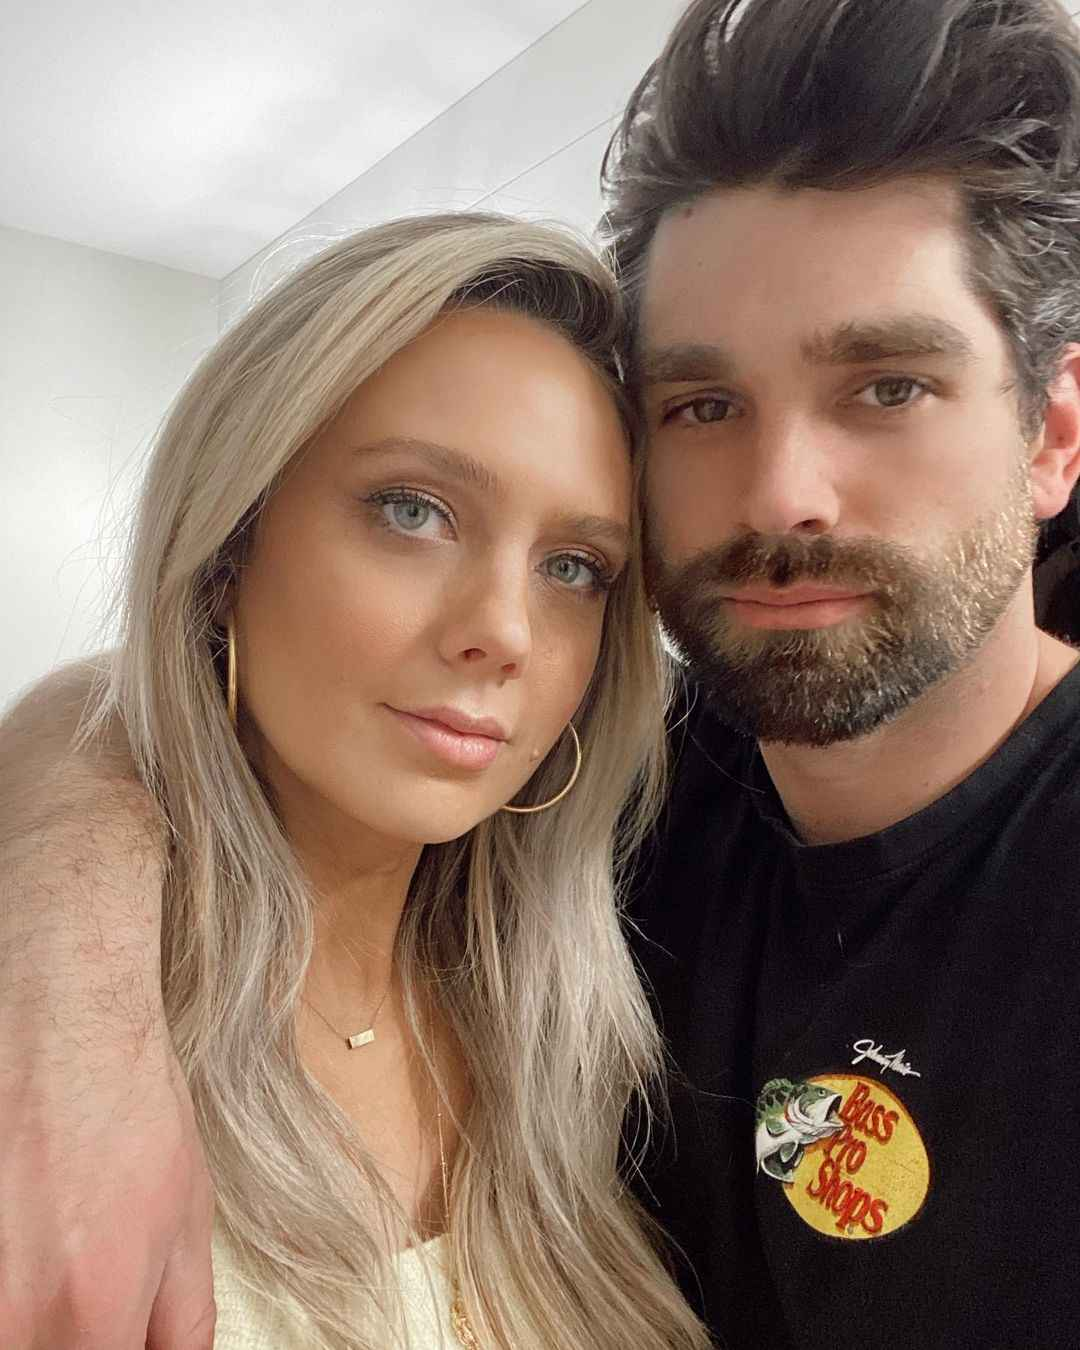 The Young and the Restless star Melissa Ordway and husband Justin Gaston